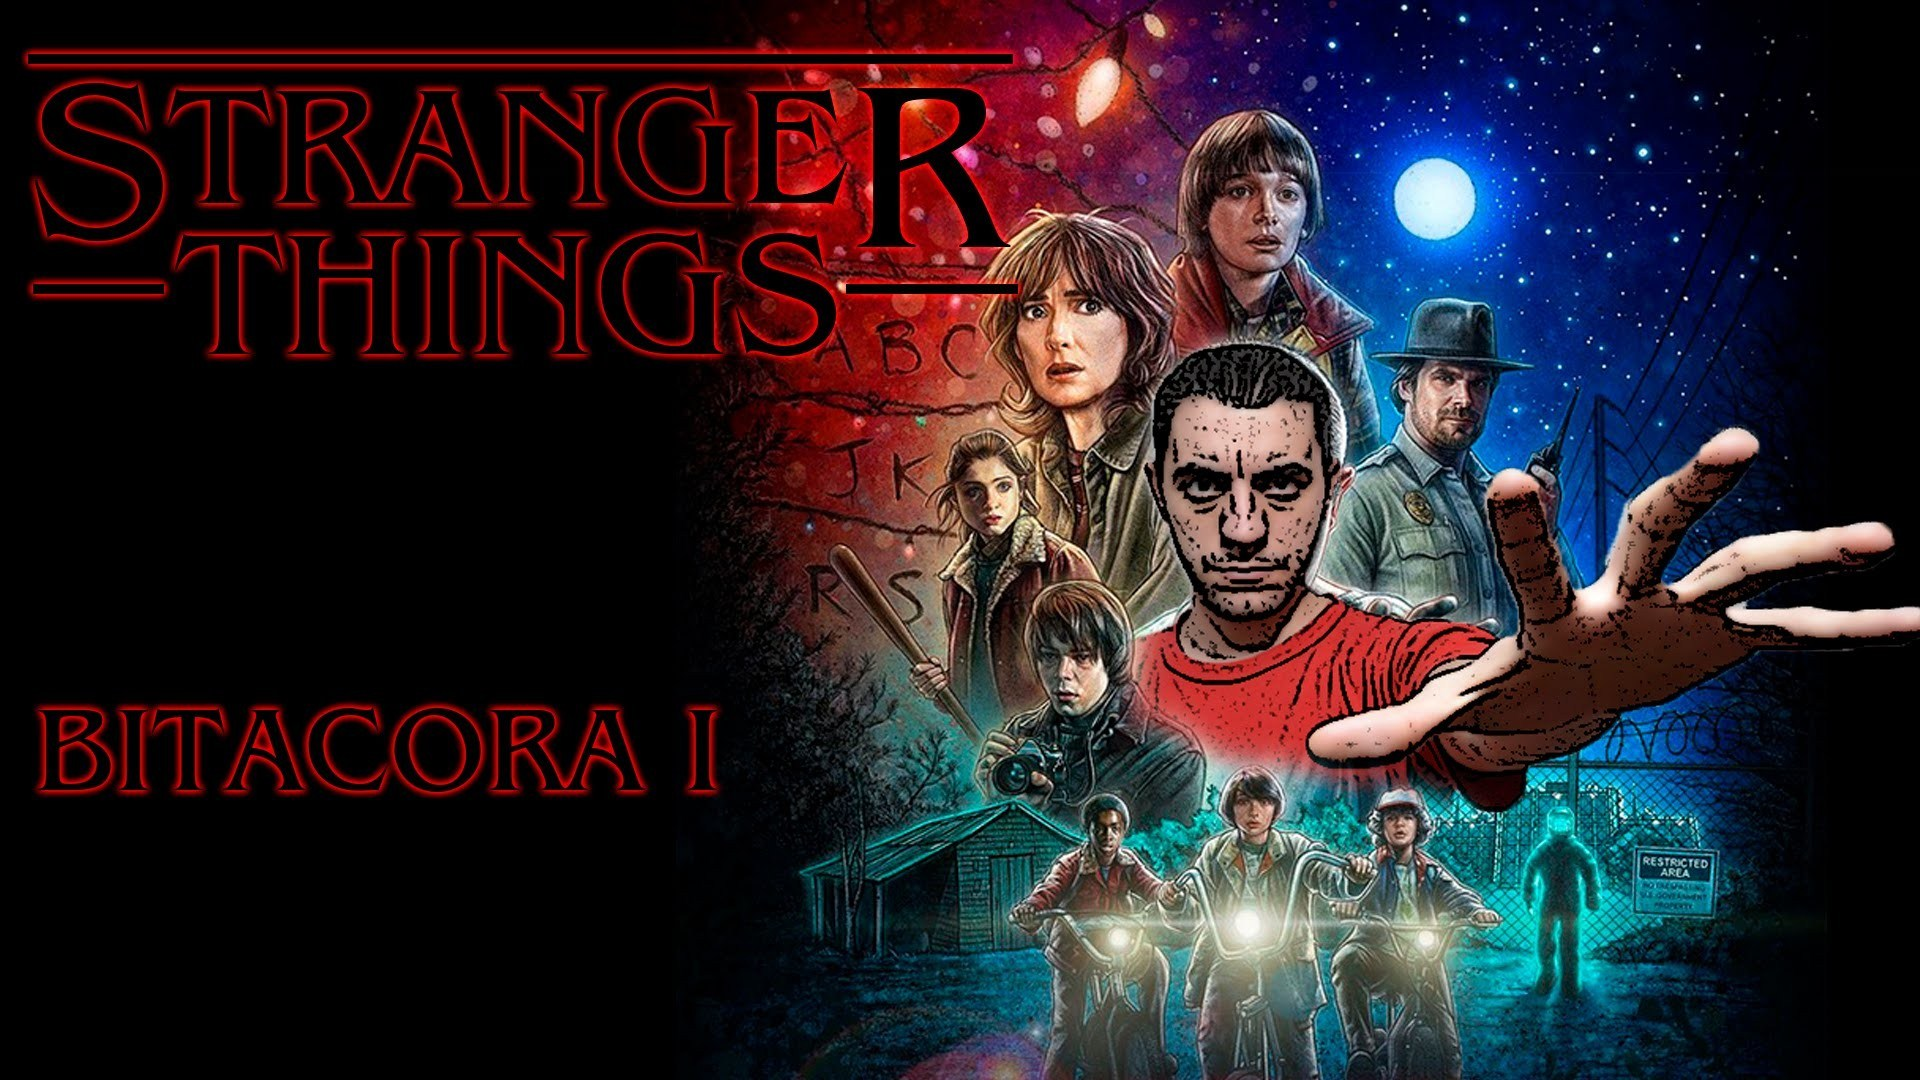 Stranger Things Wallpaper Computer Posted By Ryan Tremblay